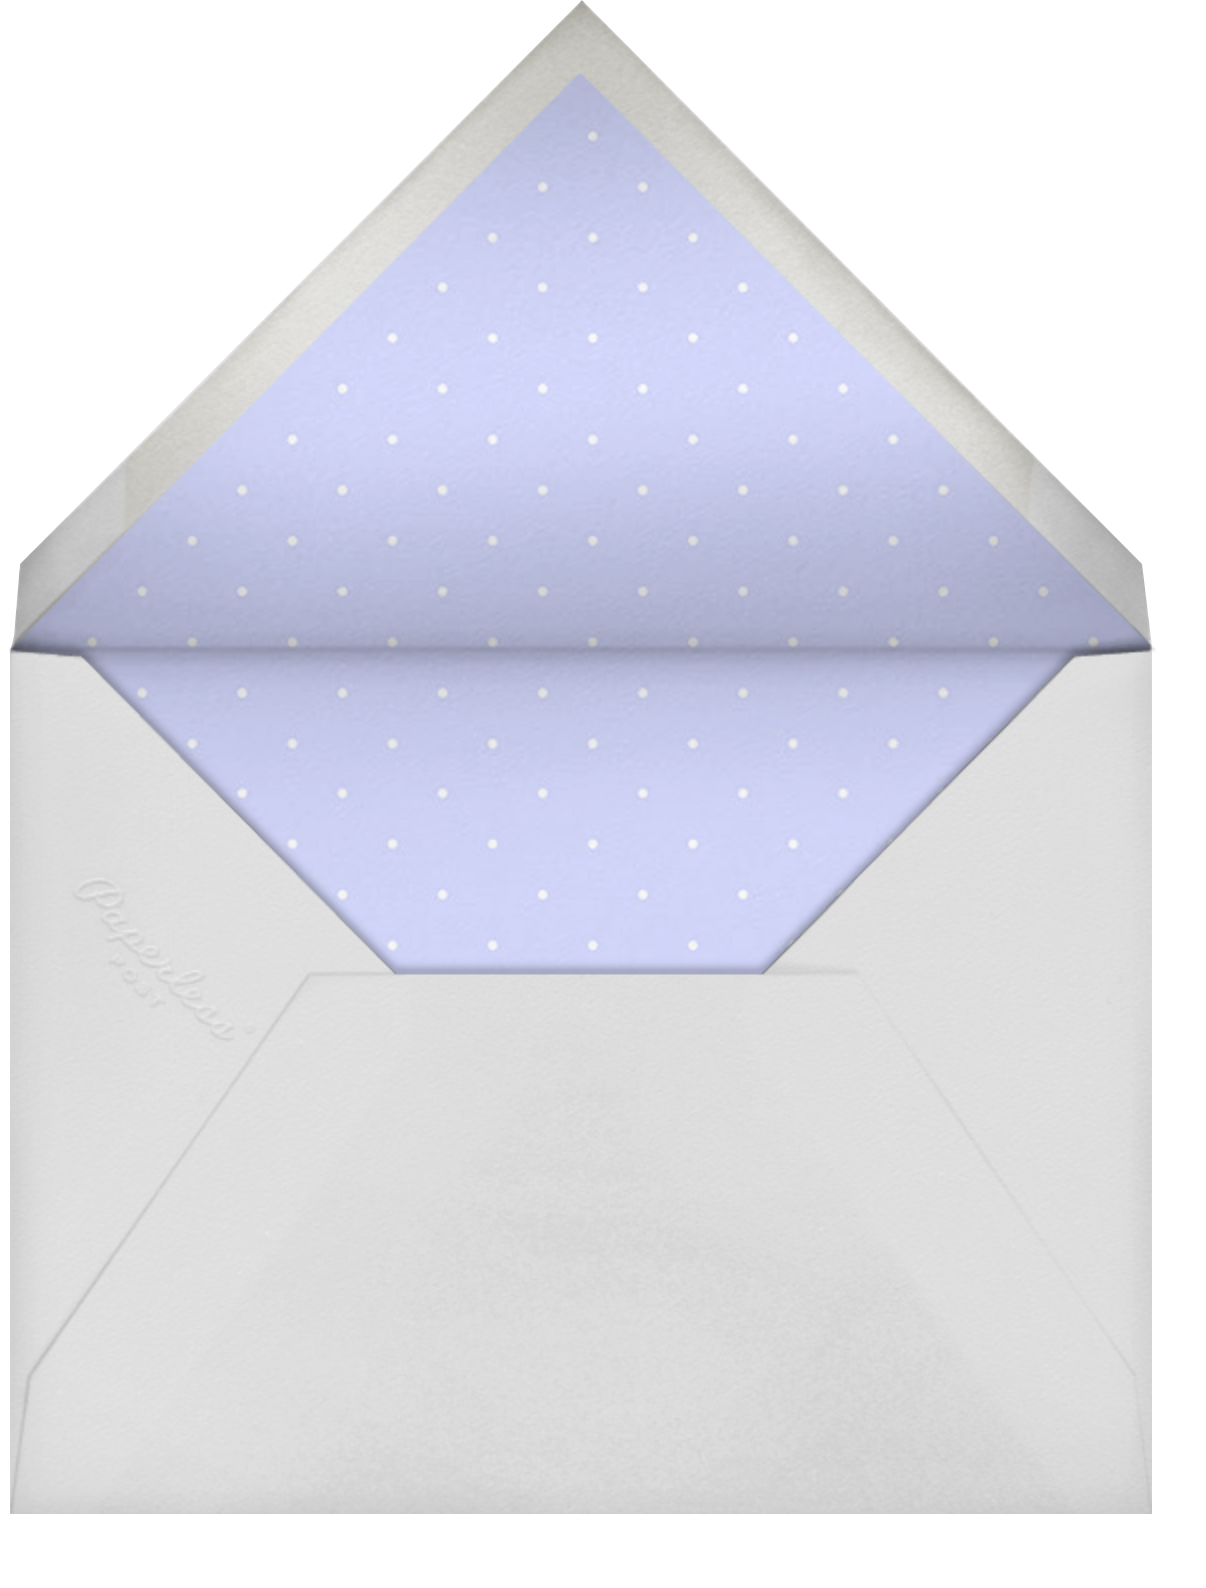 Oh Lovely Day - Wisteria - Mr. Boddington's Studio - Engagement party - envelope back